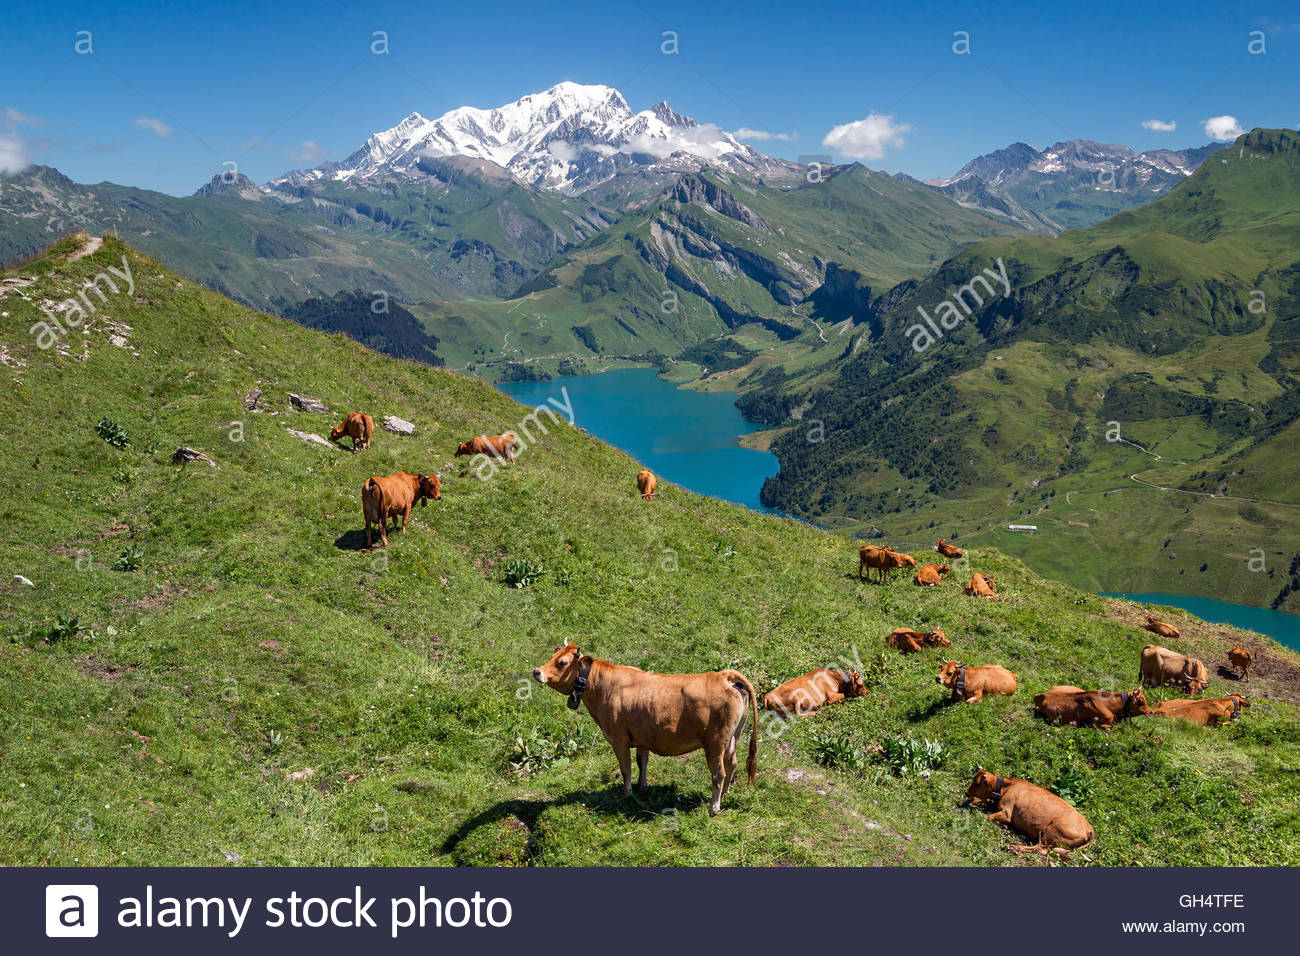 tarine-cows-in-front-of-roselend-lake-an